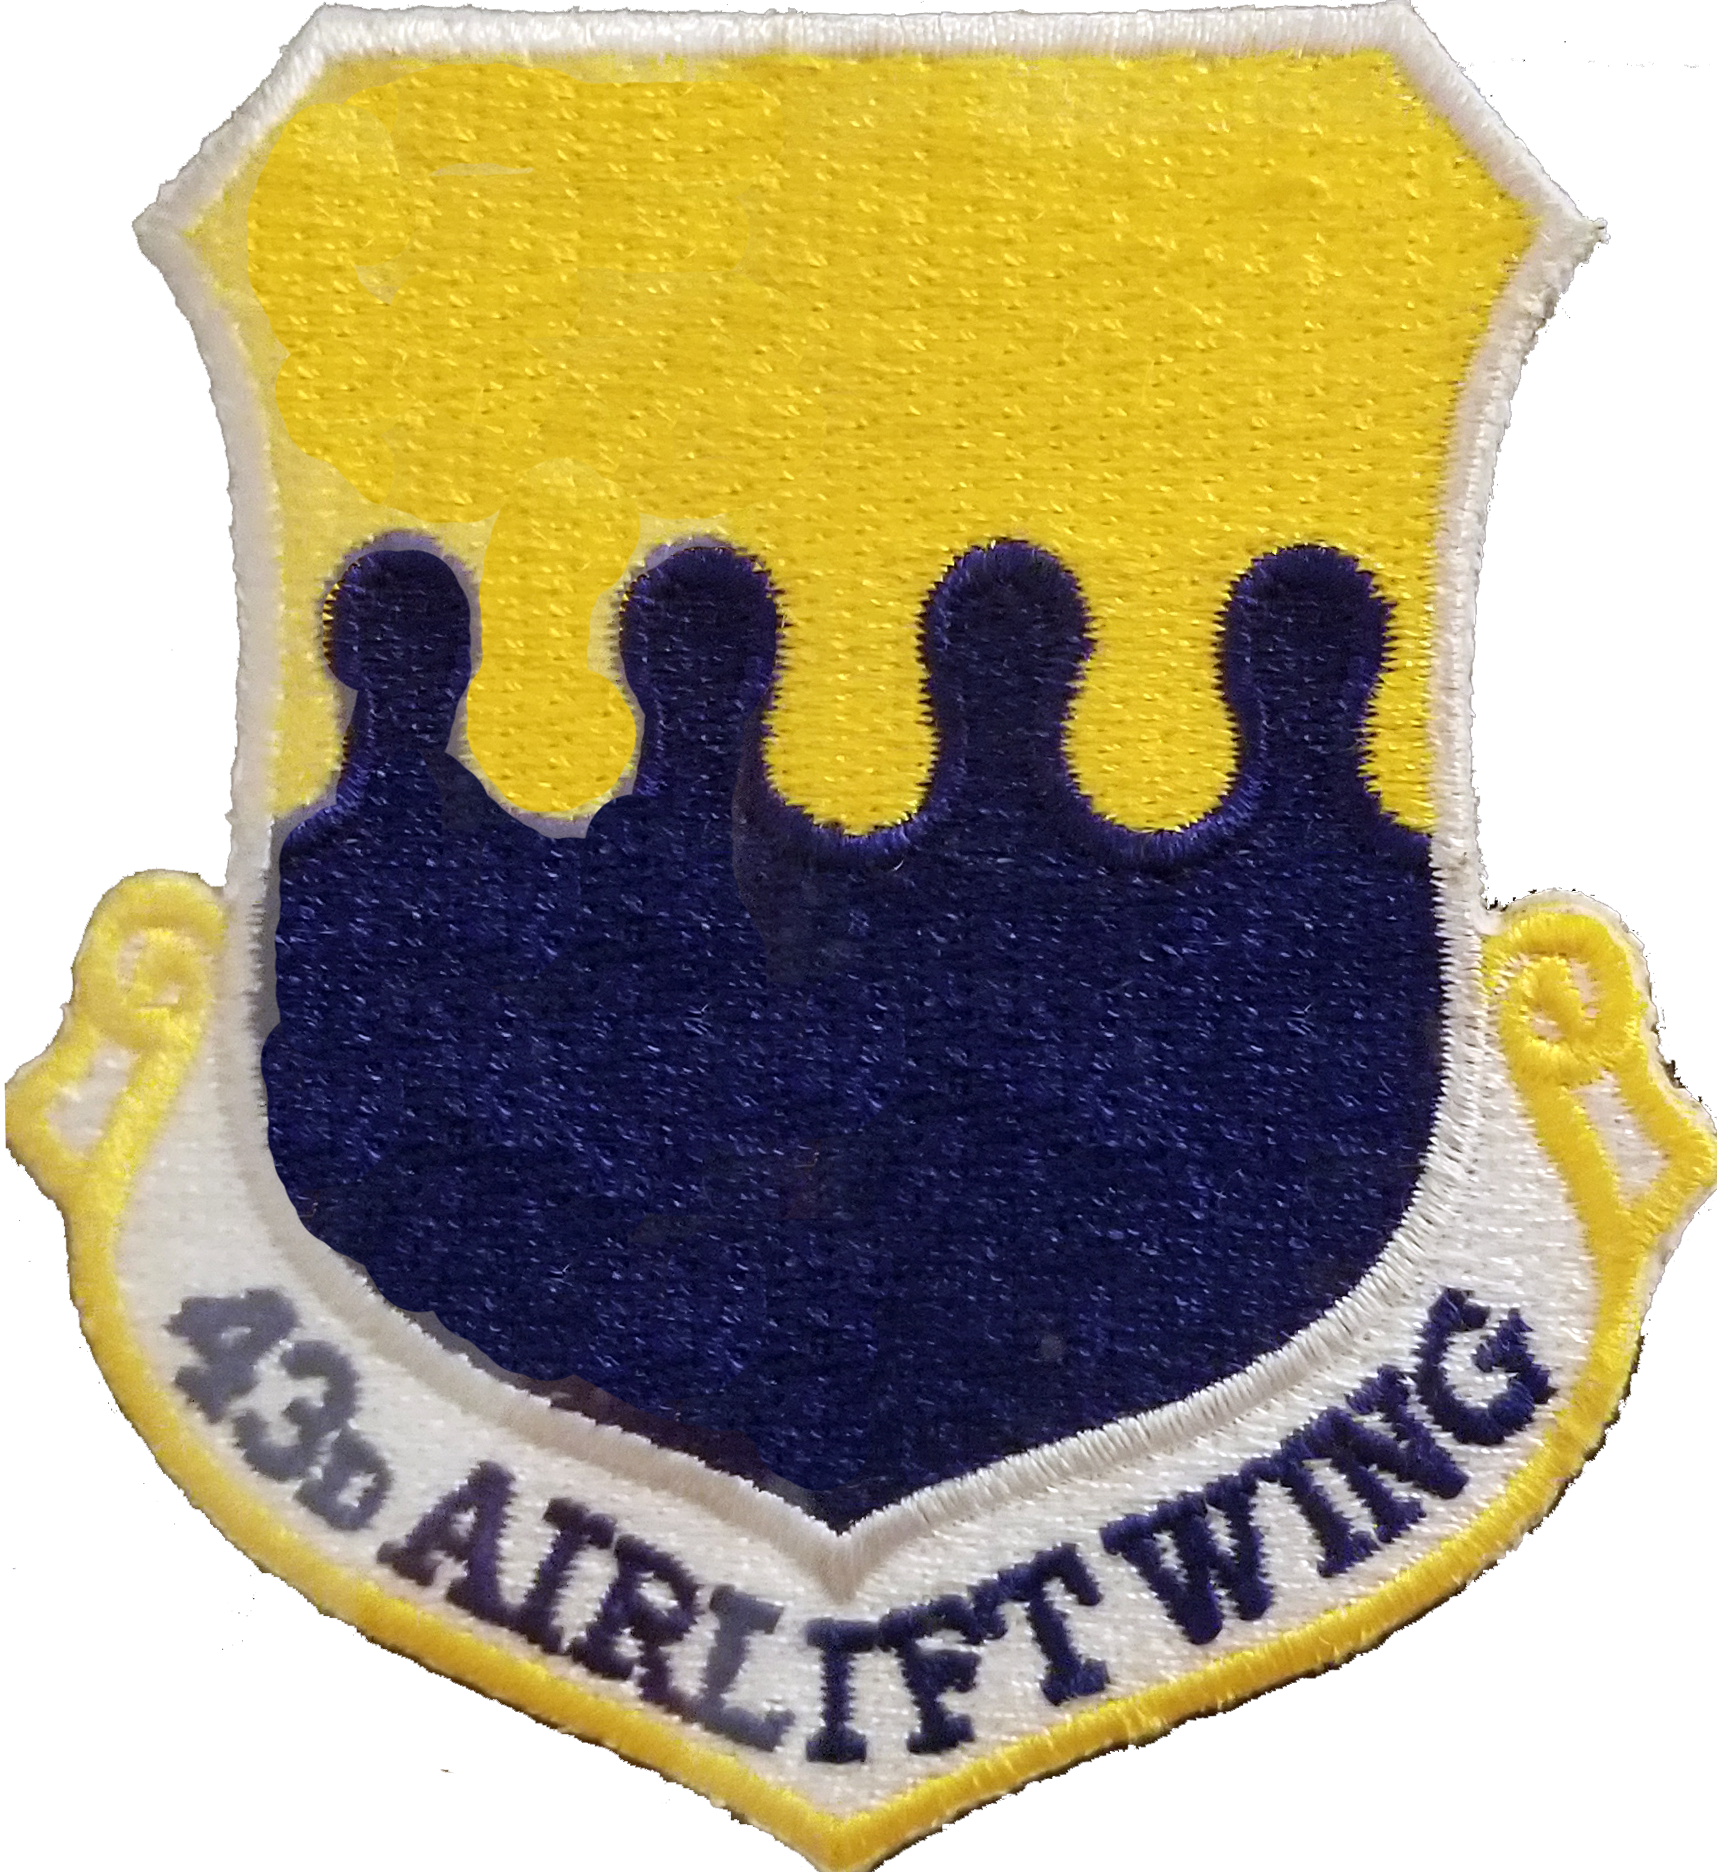 43rd Airlift Wing